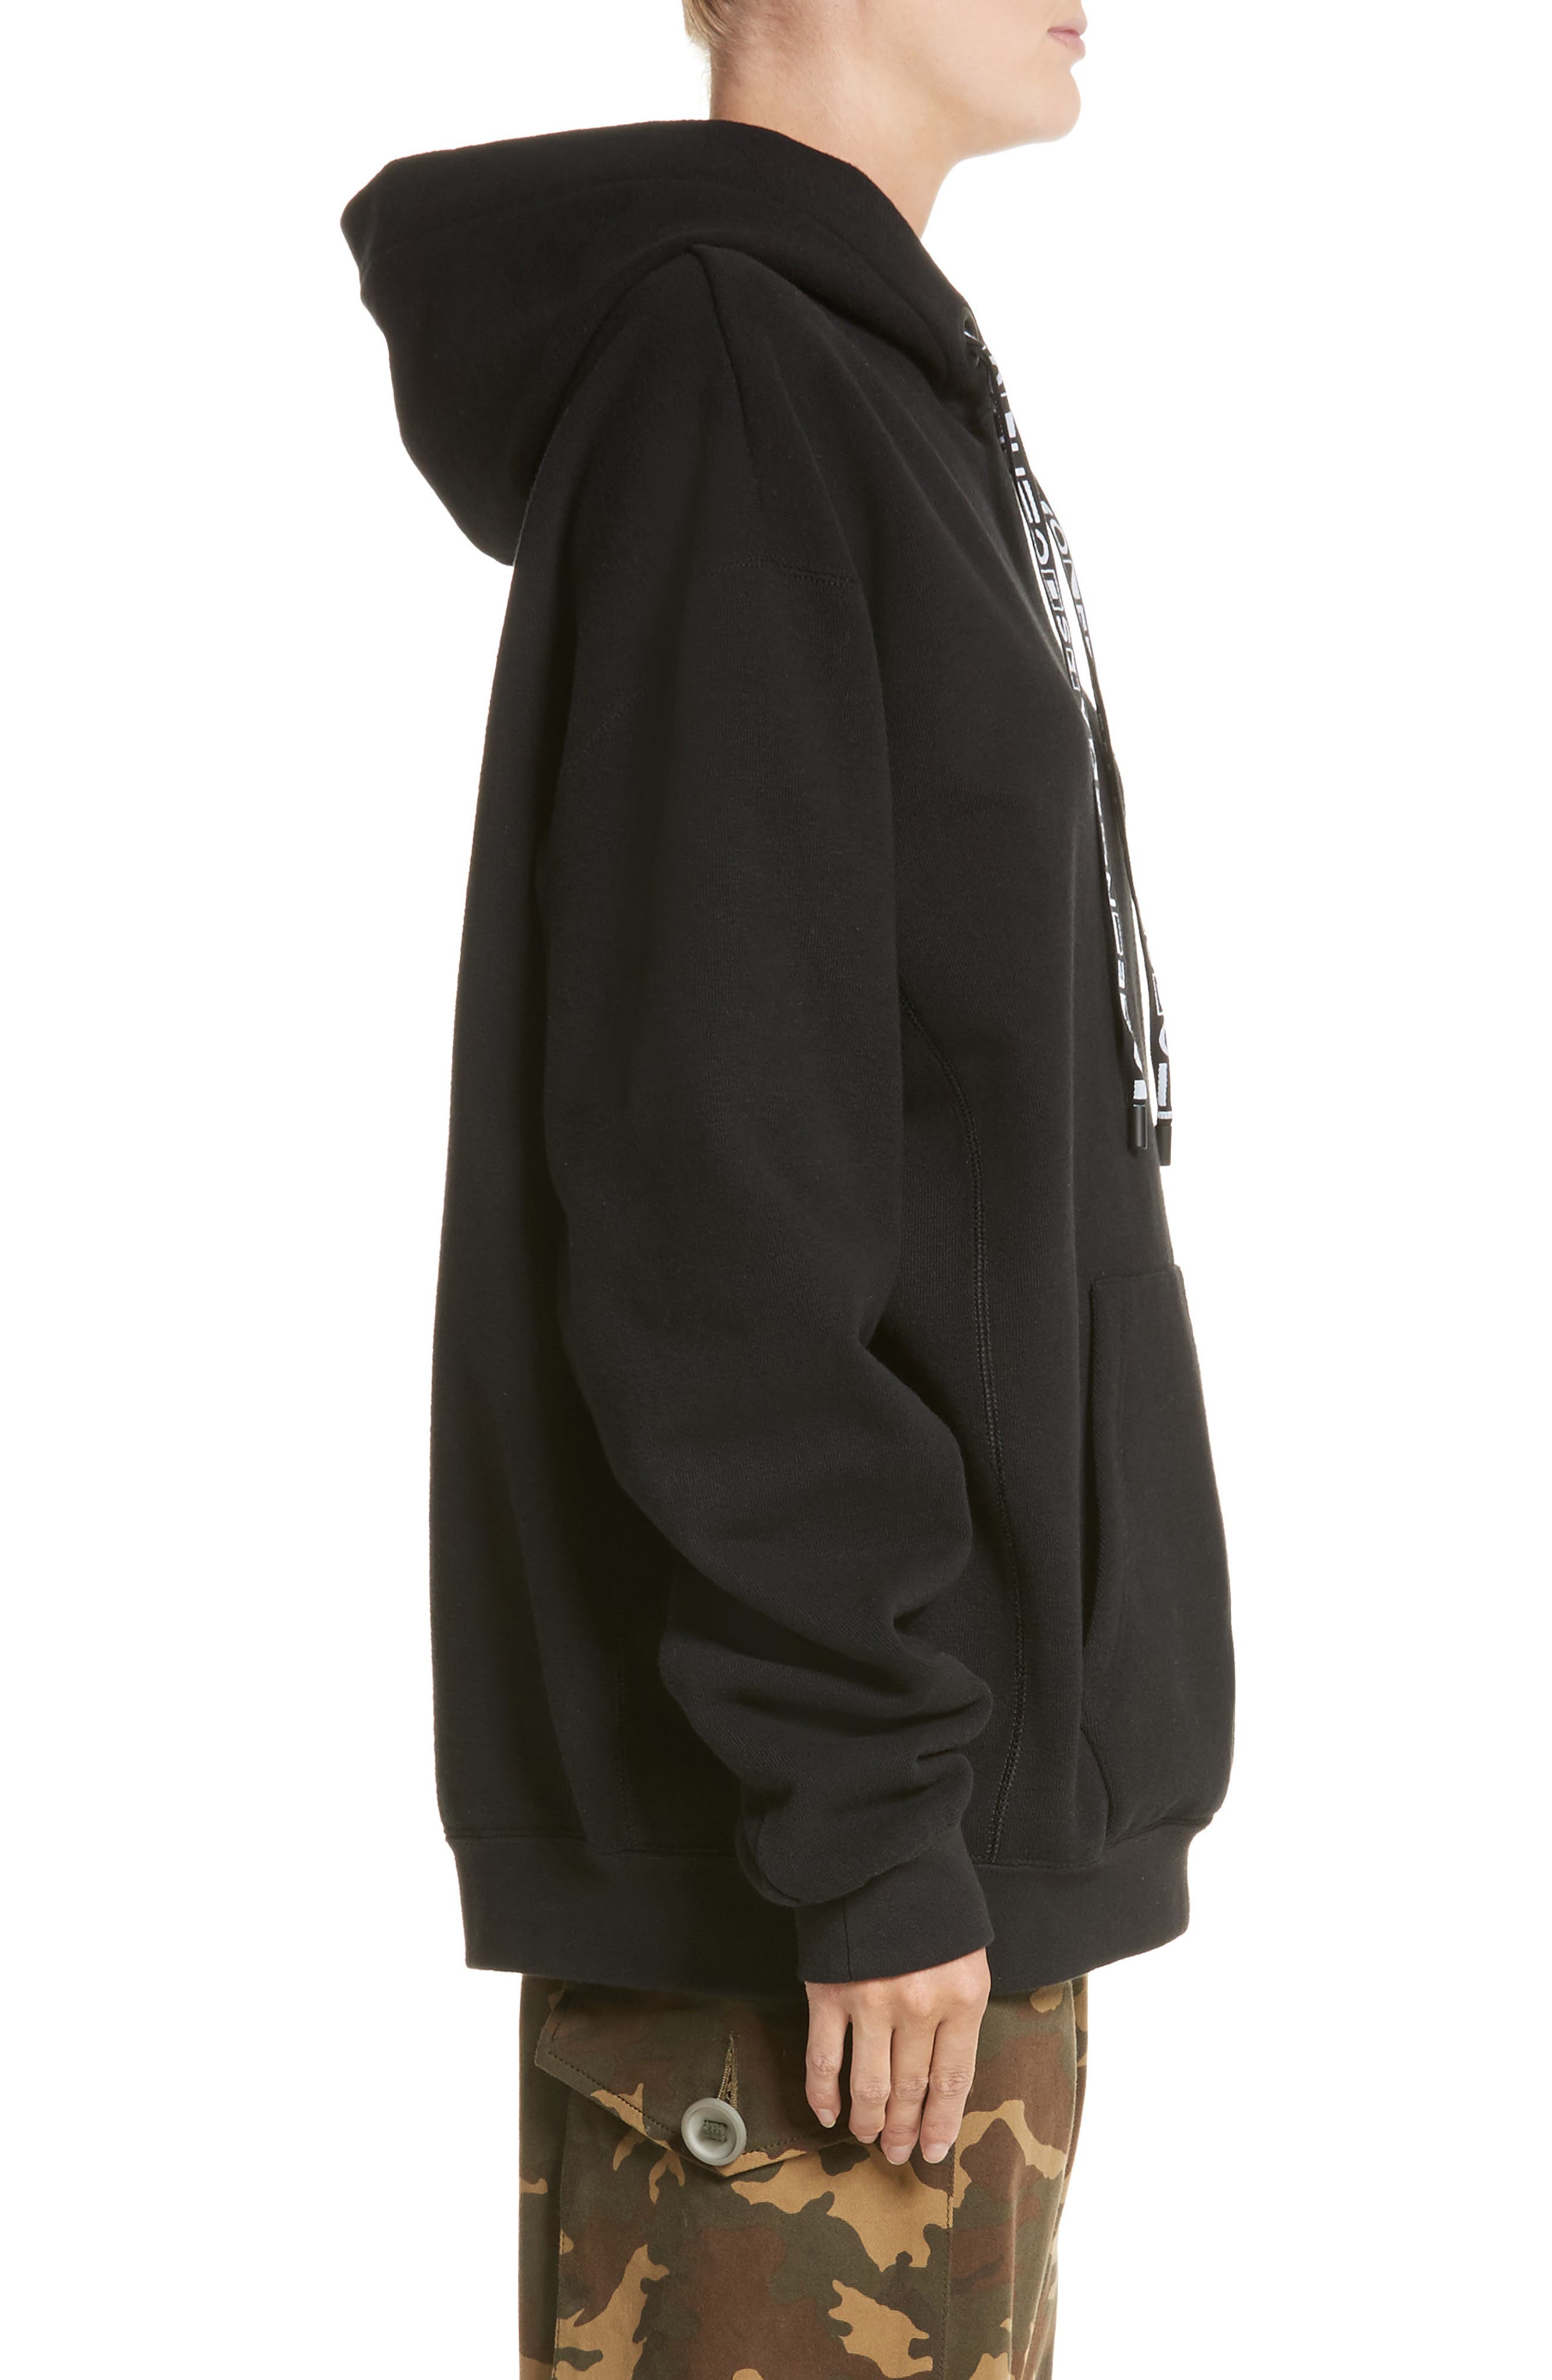 PSWL Graphic Drawstring Hoodie,                             Alternate thumbnail 3, color,                             BLACK